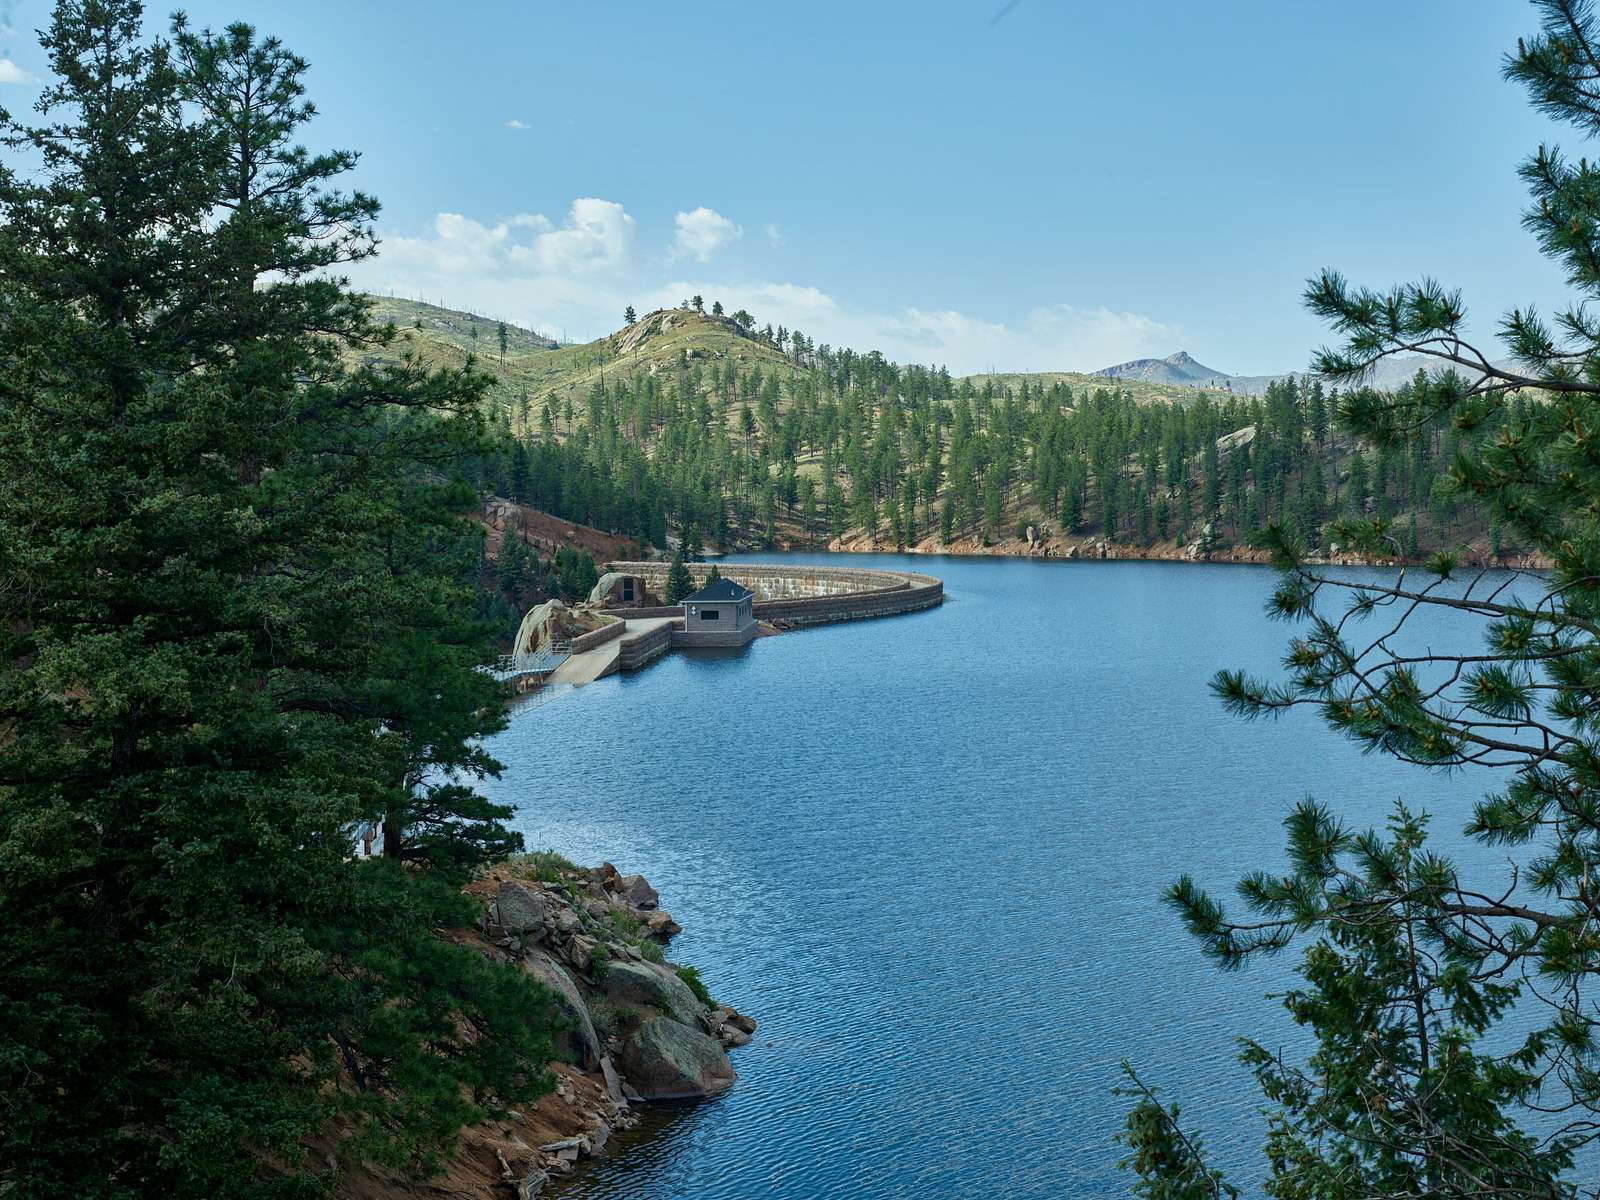 A view of Cheesman Reservoir and a bit of the curve of Cheesman Dam, one of the dams that slows and captures water from the South Platte River for use as part of Denver's drinking-water supply. The dam, which, like the reservoir, was named for Walter Scott Cheesman, a Denver druggist, railroad builder, and designer of water infrastructure, was the world's tallest at 221 feet when it was completed in 1905